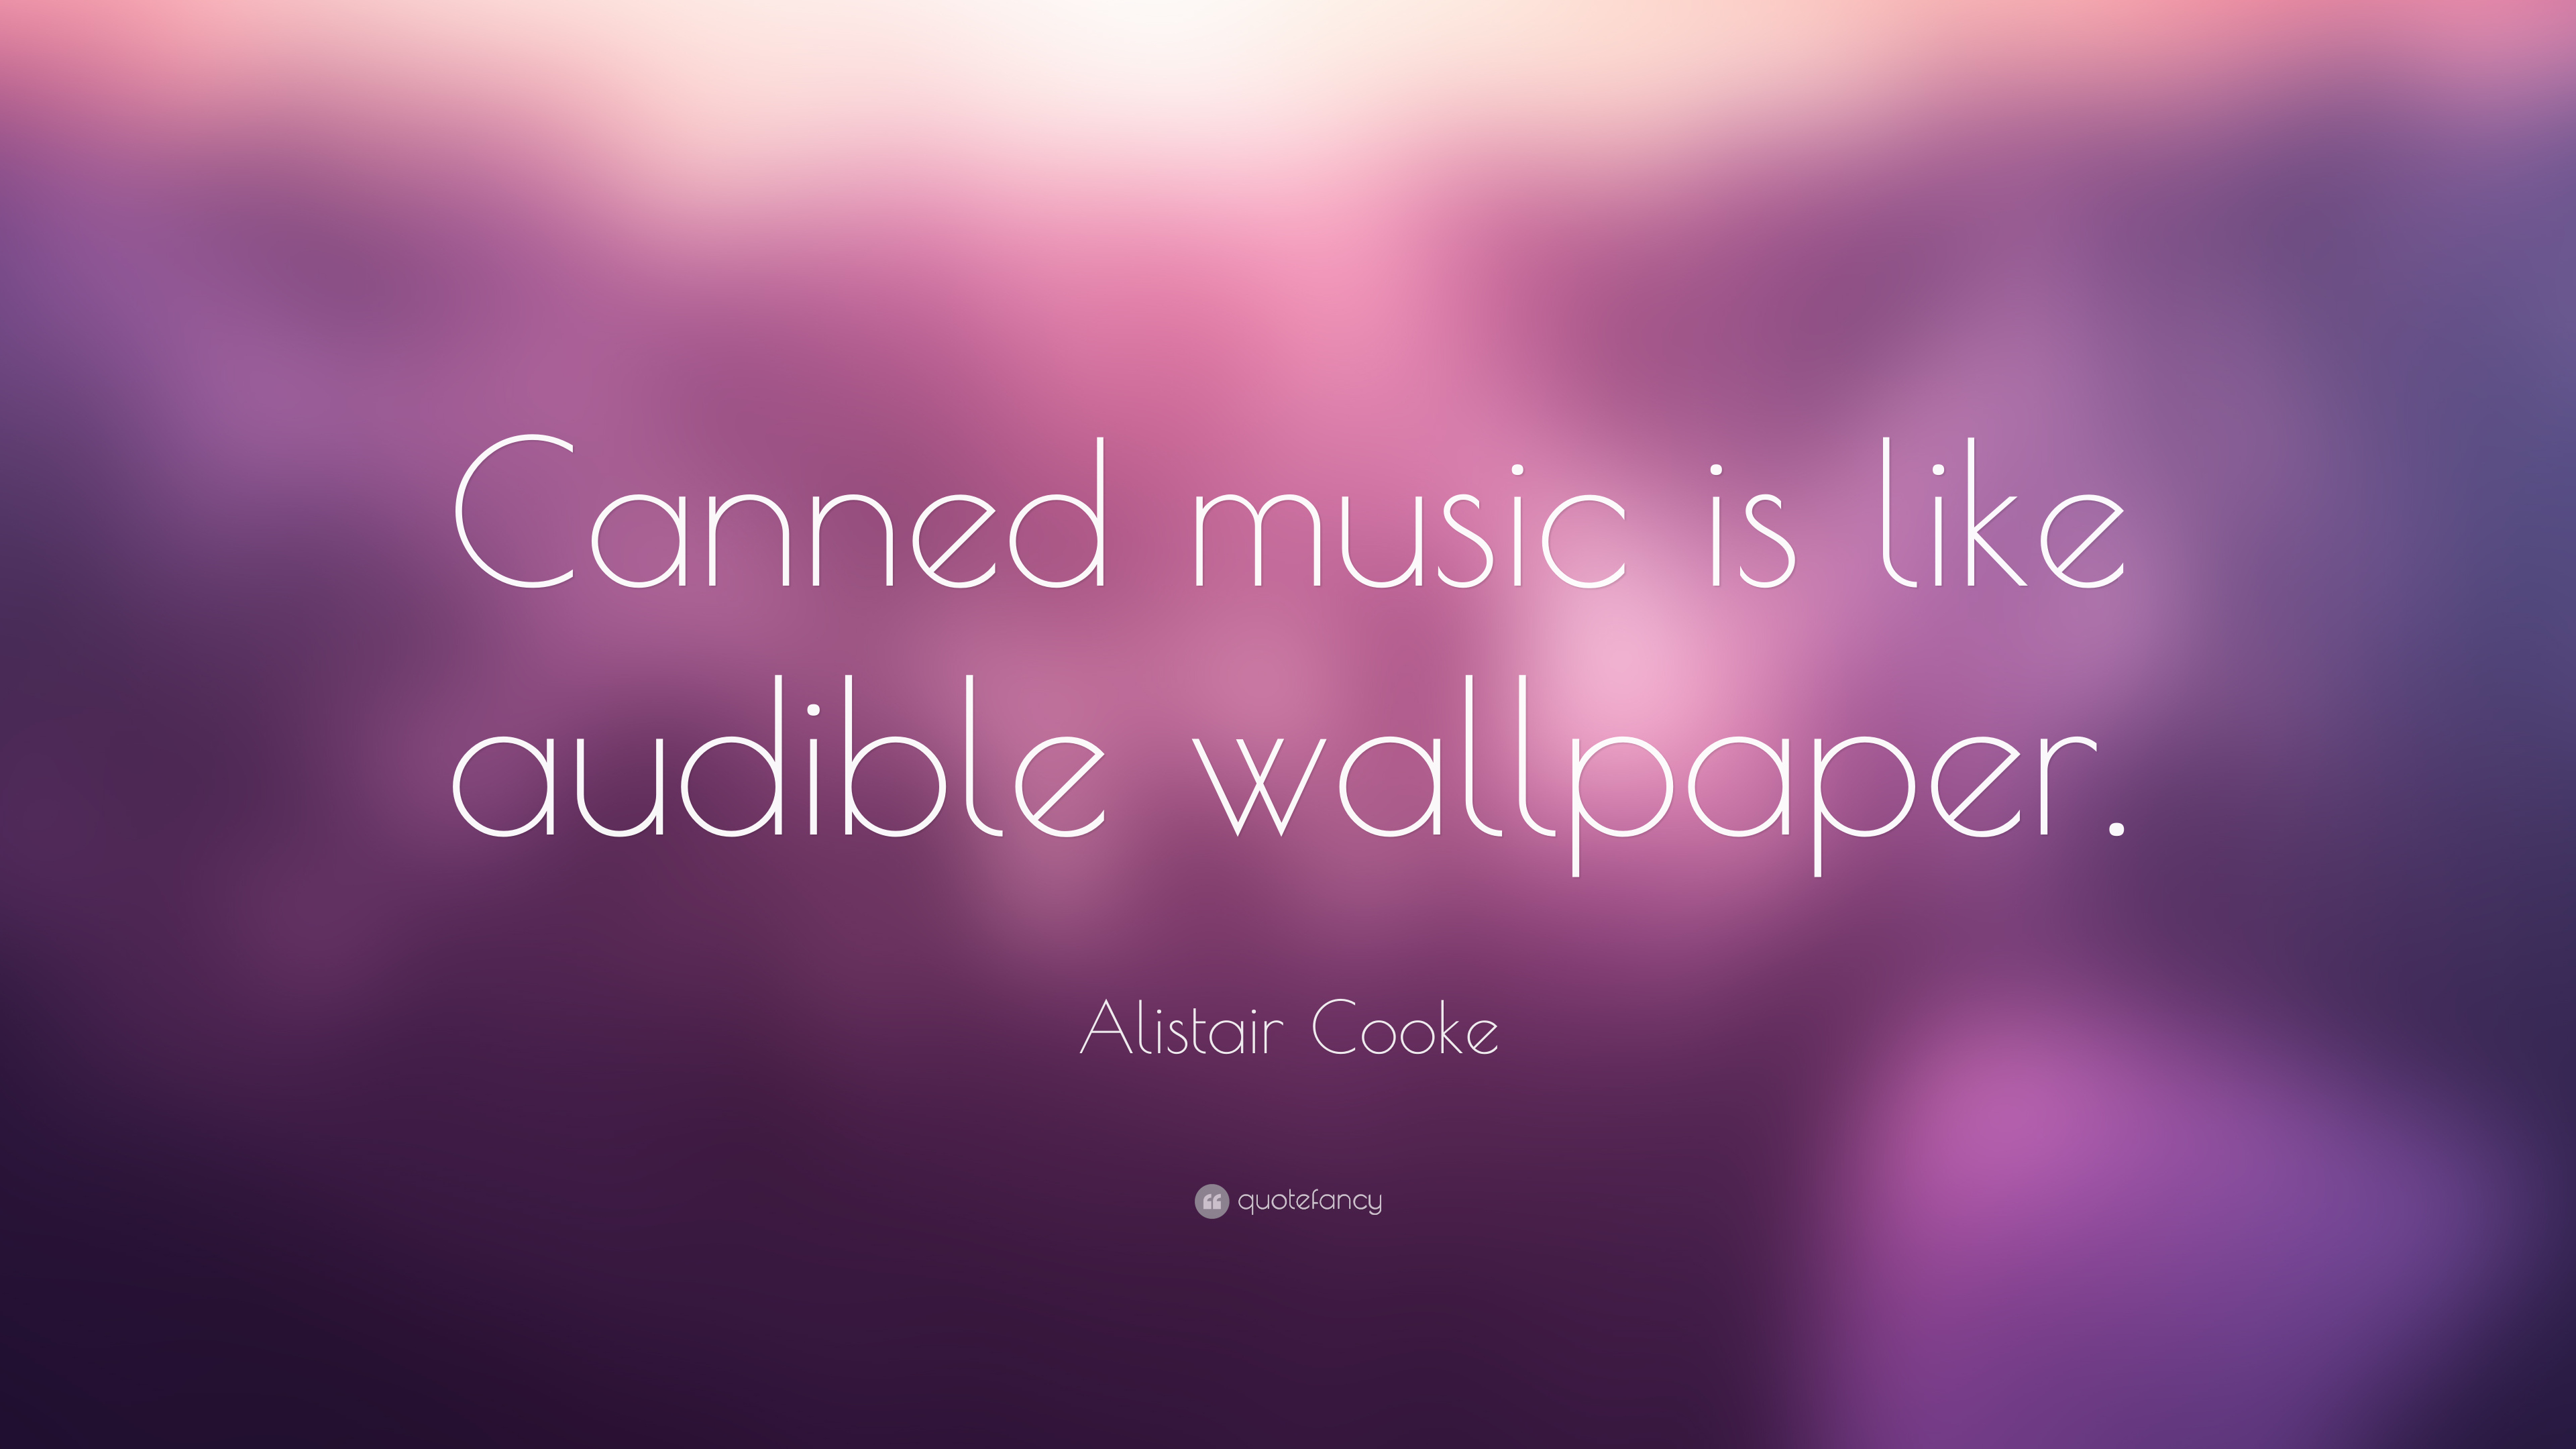 Cool Wallpaper Music Violet - 3001153-Alistair-Cooke-Quote-Canned-music-is-like-audible-wallpaper  Trends_15814.jpg